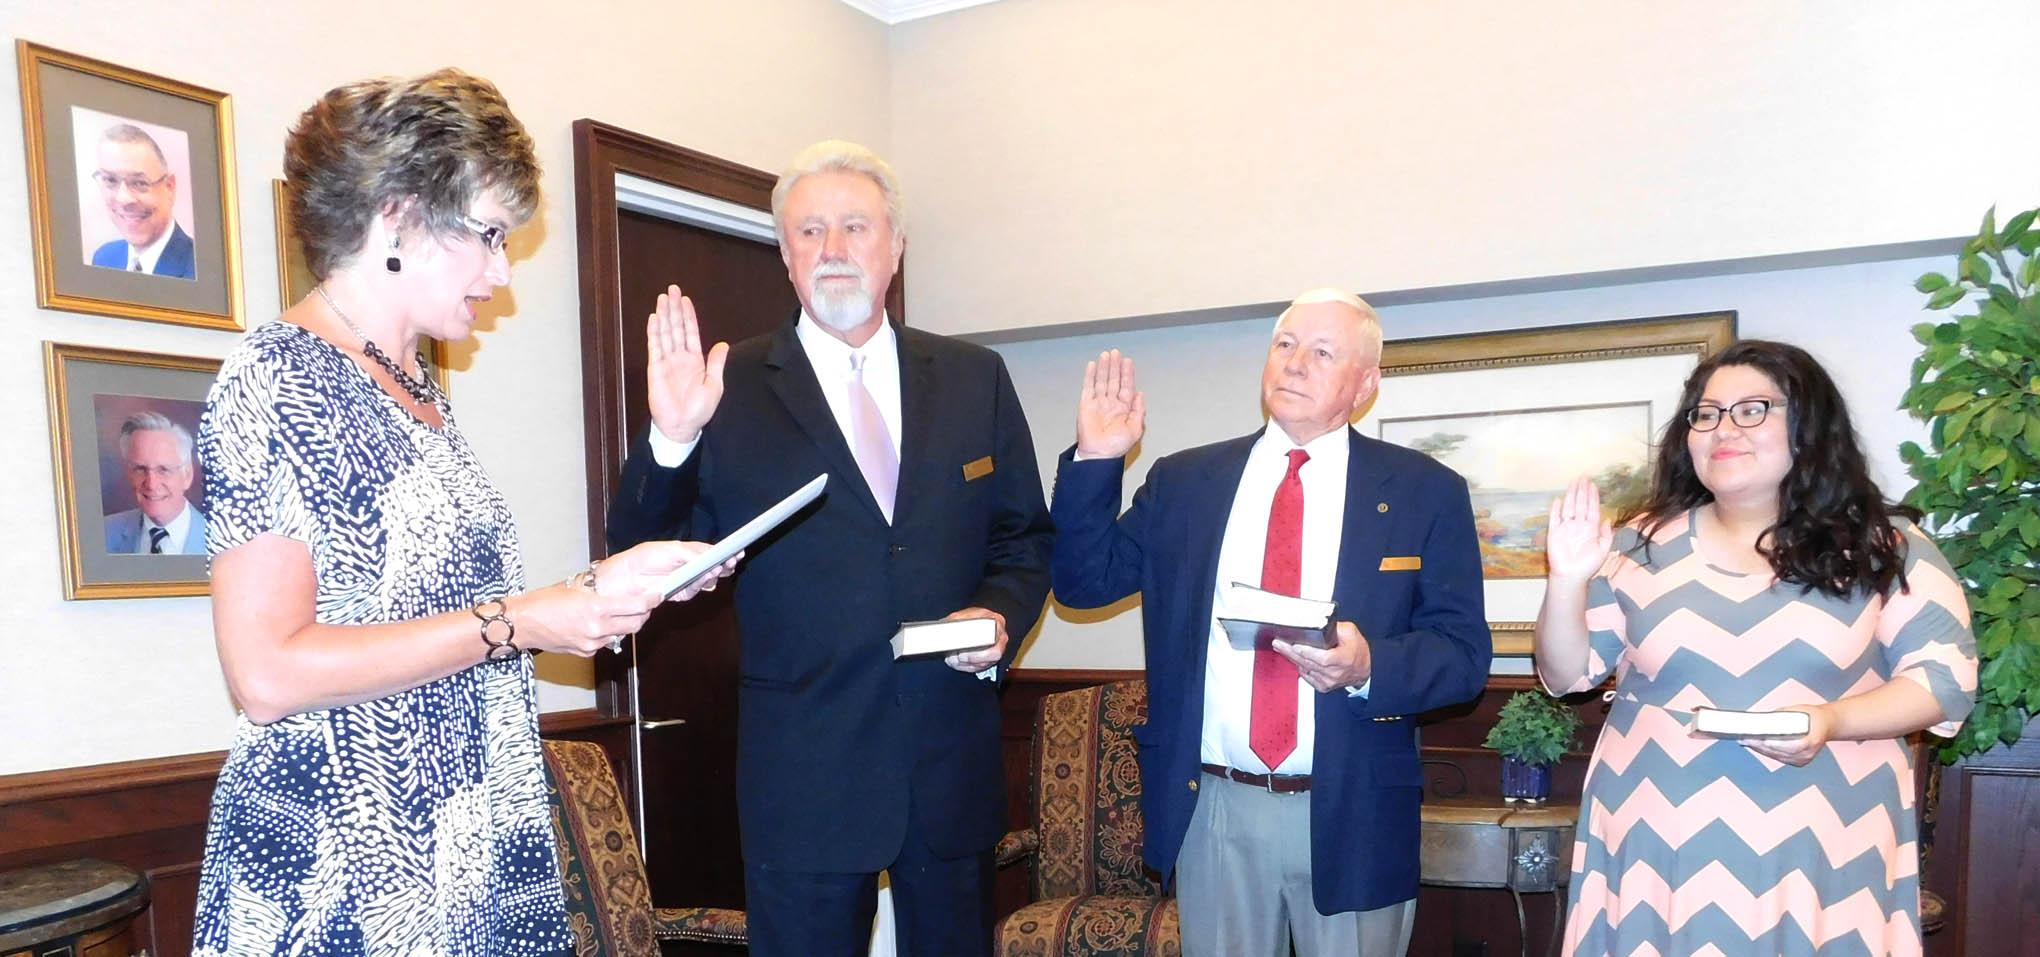 Read the full story, CCCC new and reappointed Trustees are sworn-in